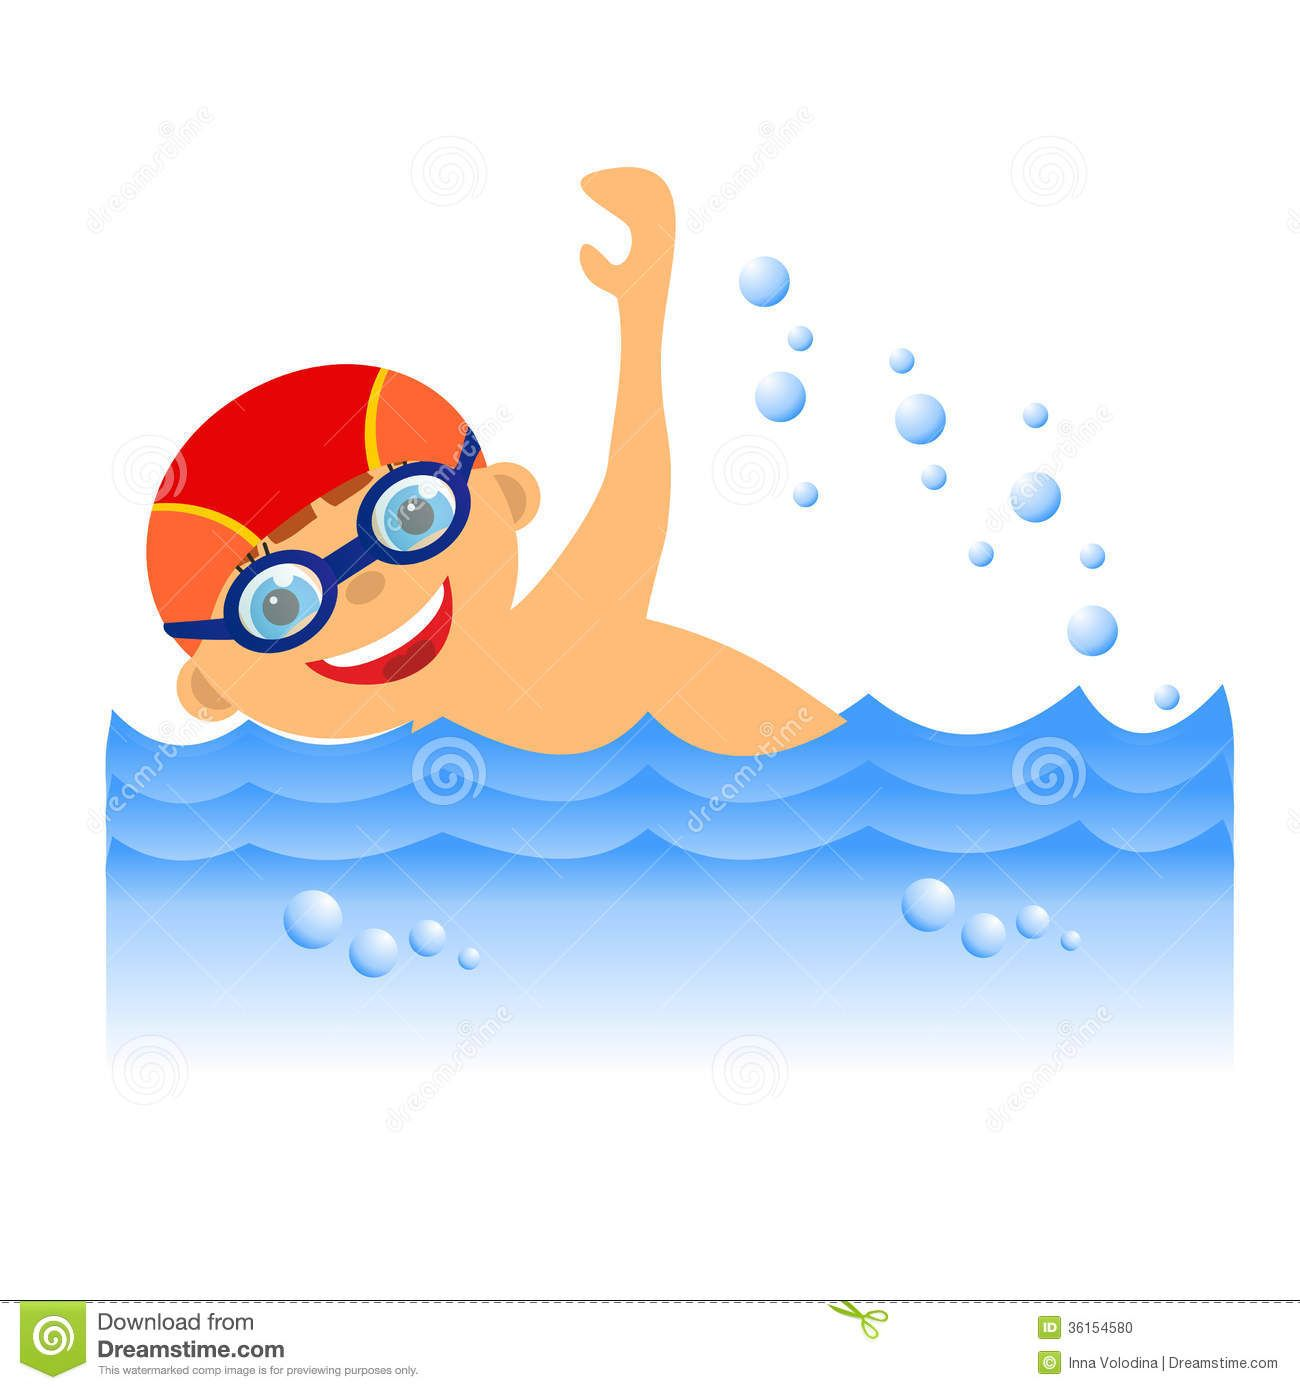 Katie ledecky cliparts clip freeuse download Image result for clipart swim | Swim in 2019 | Swimming ... clip freeuse download